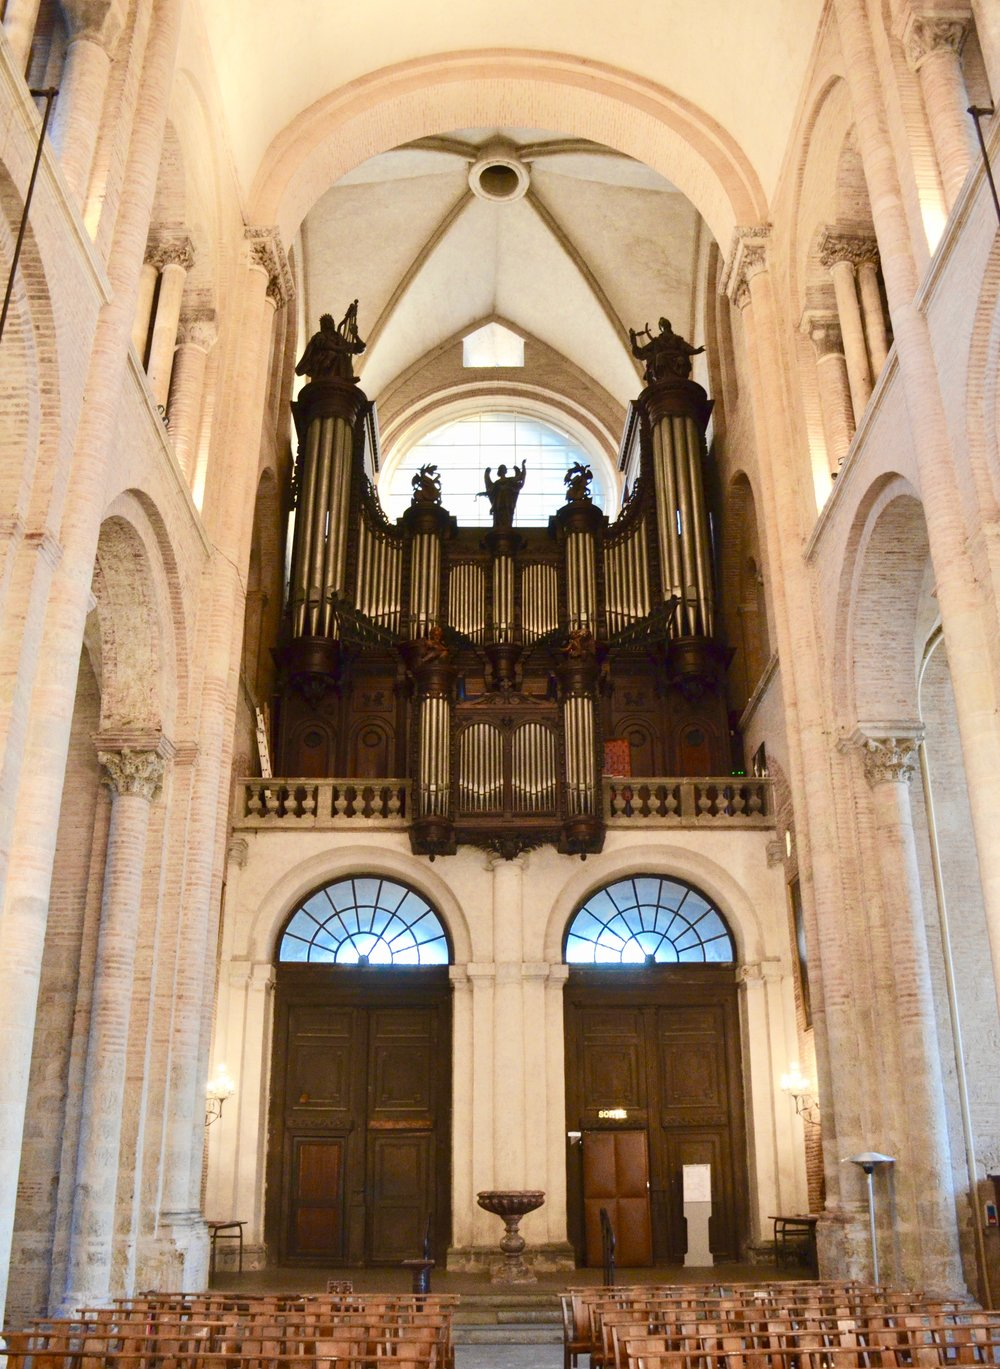 The Cavaillé-Coll organ in St-Sernin, Toulouse.